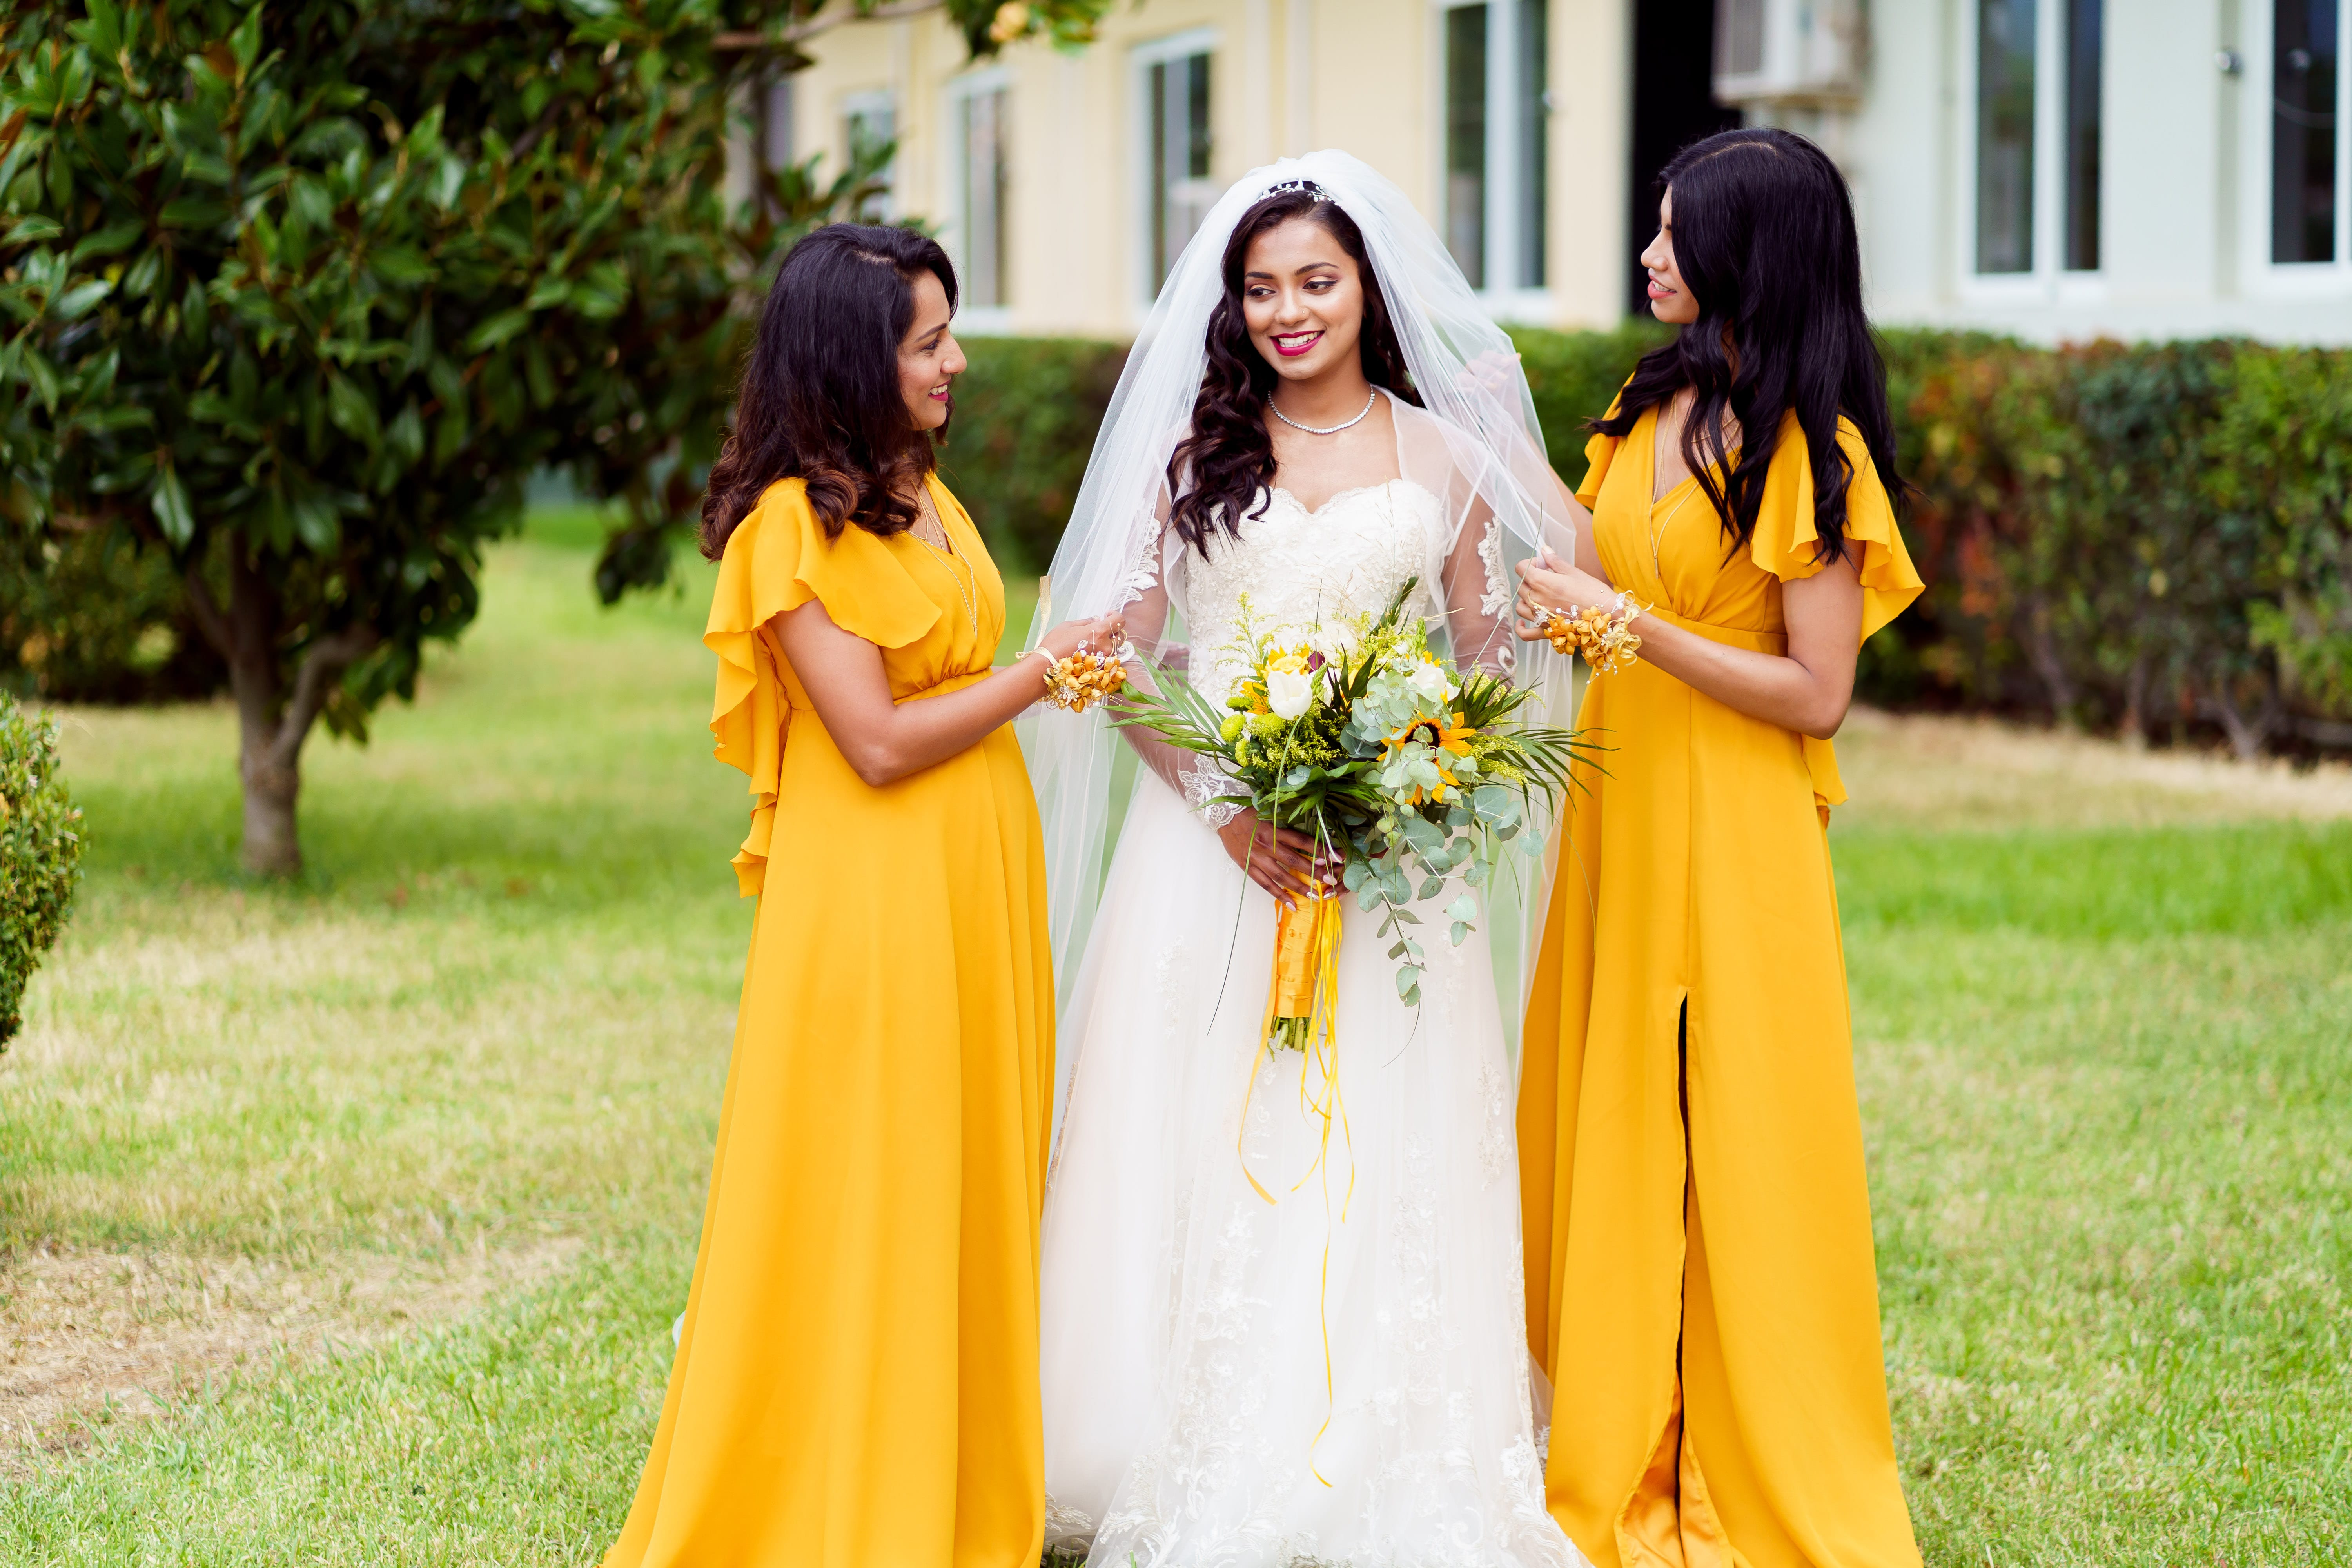 Documentary Wedding Photography - Bride & Bridesmaids